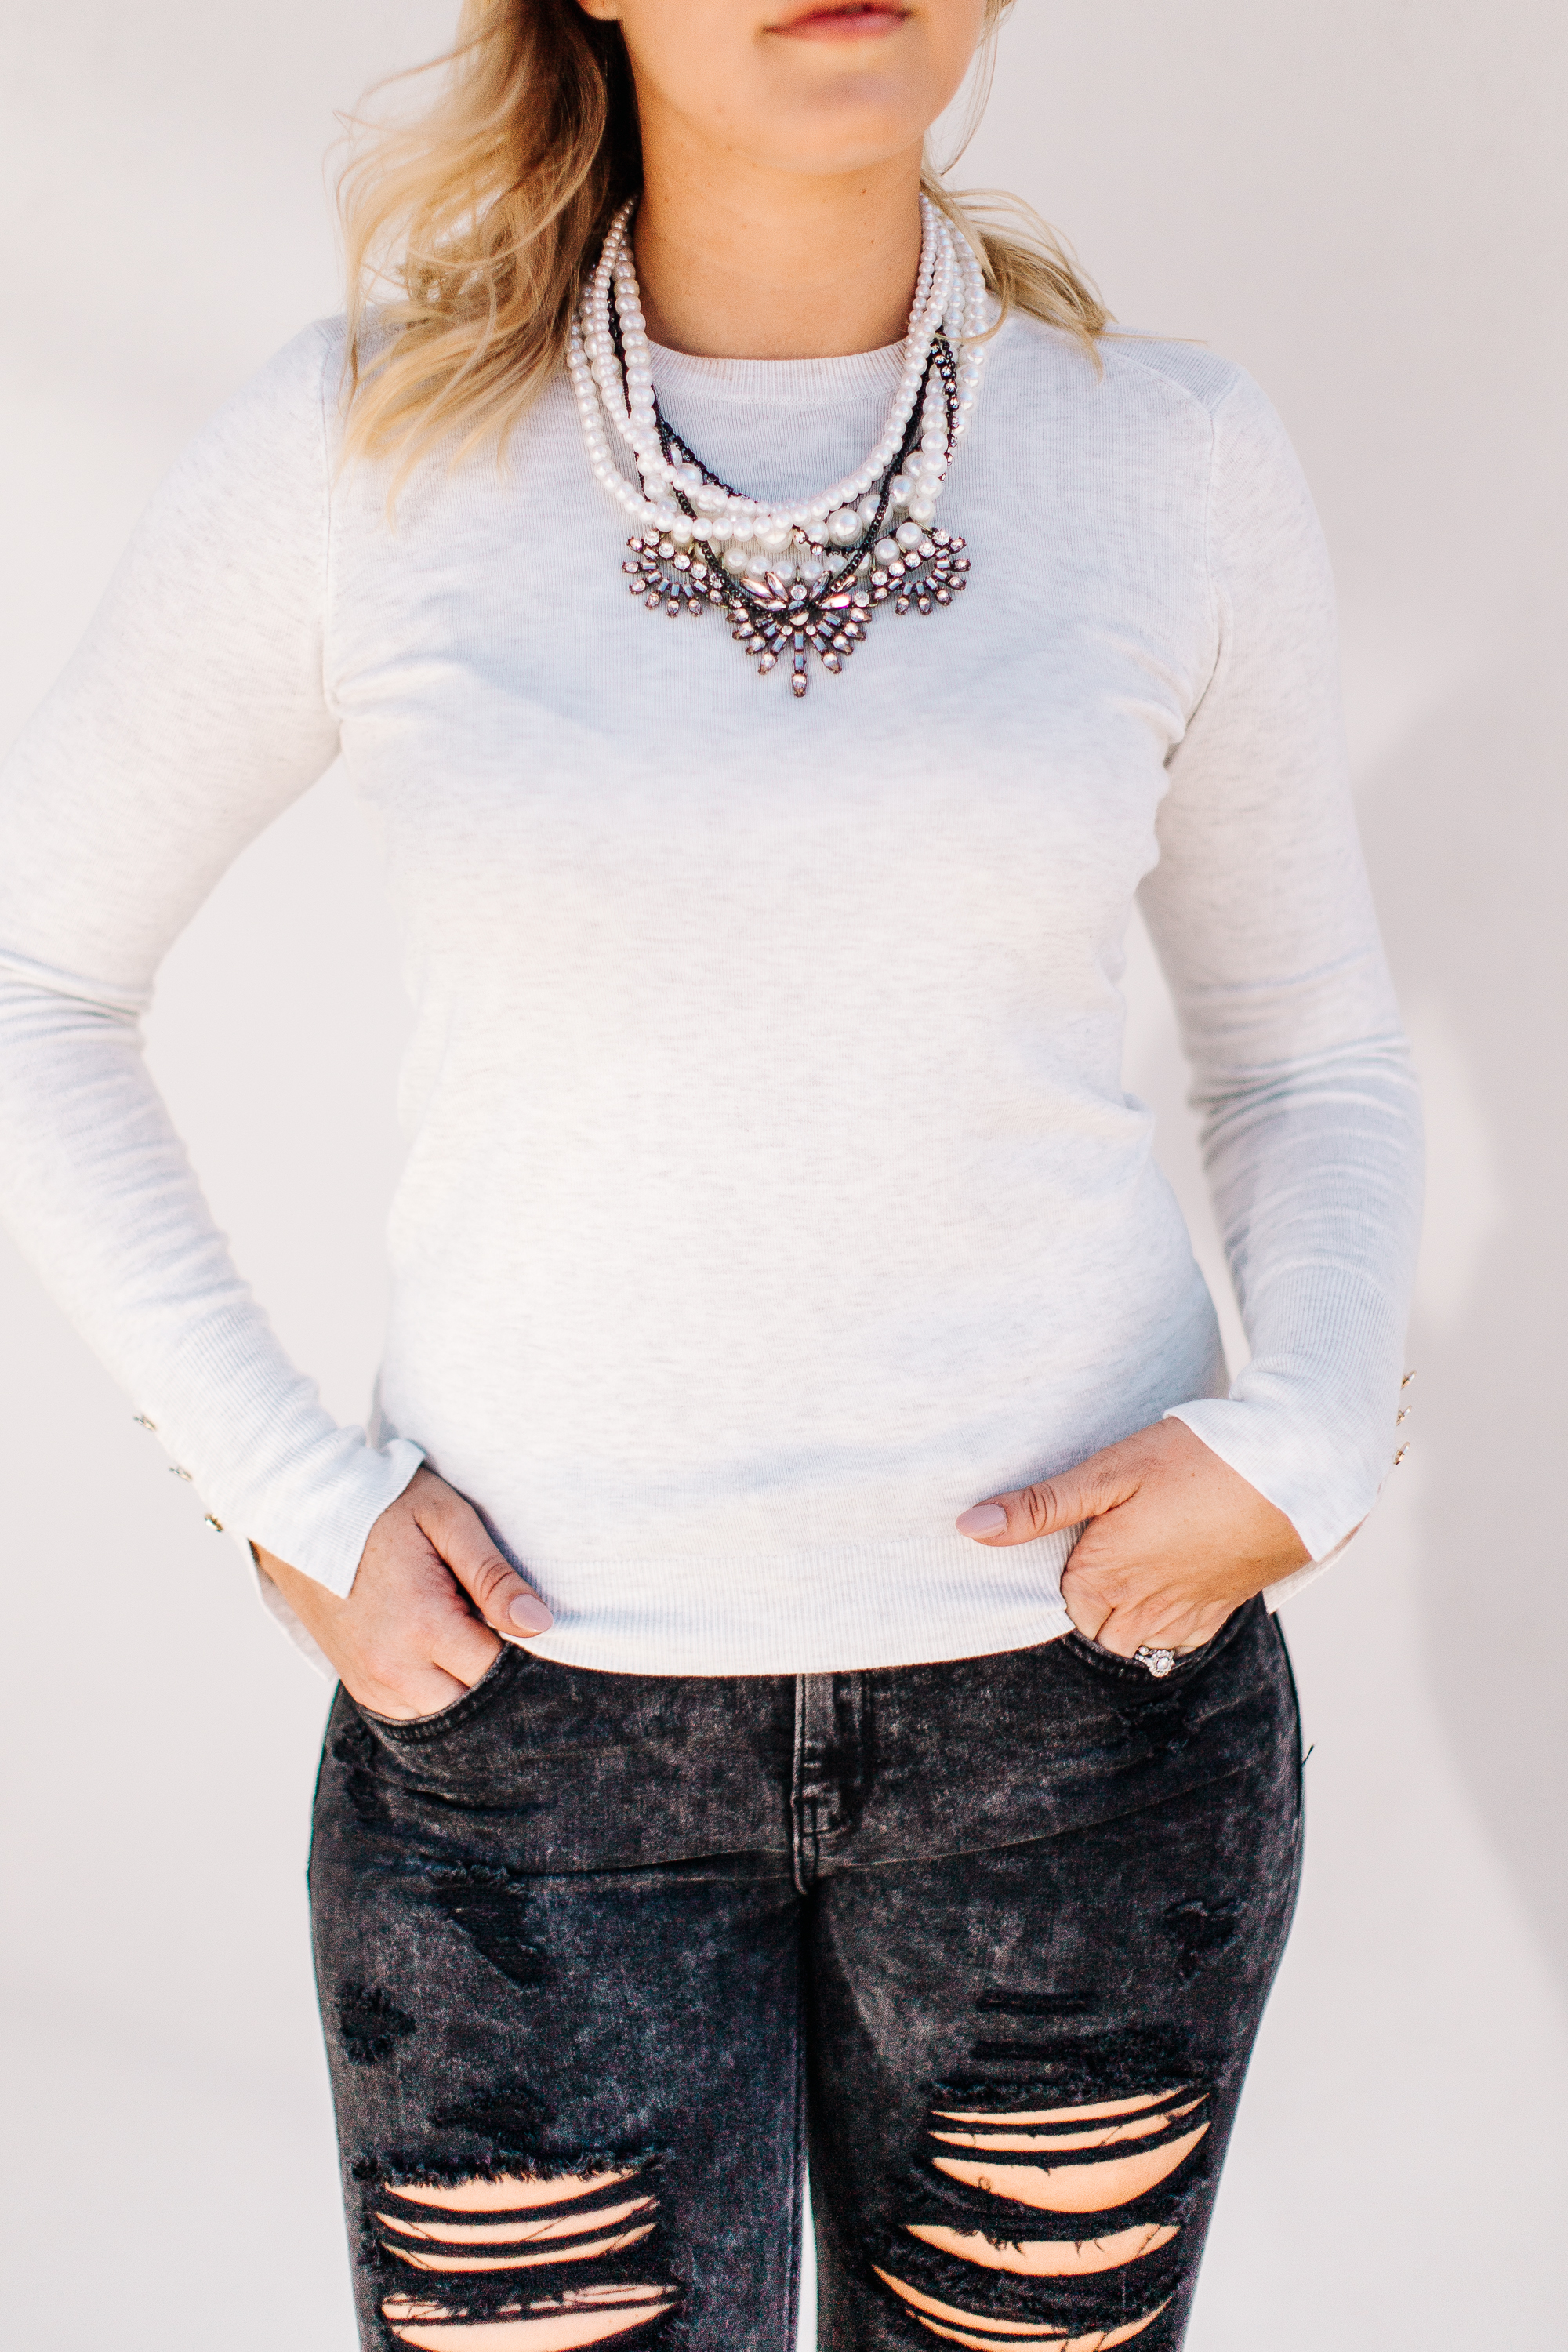 distressed denim and pearl necklace.jpg